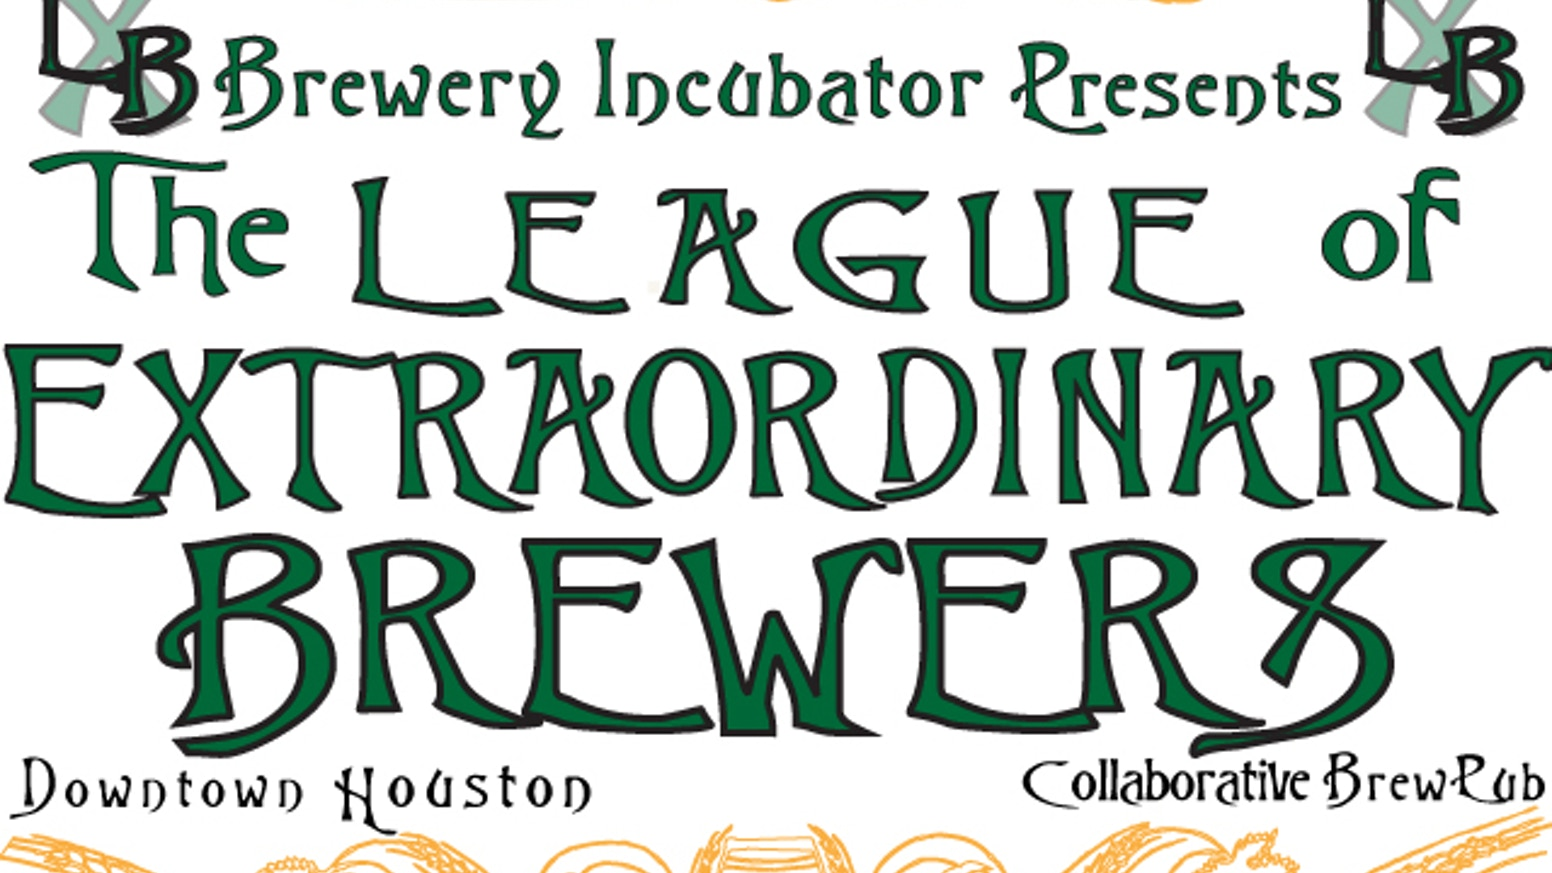 The Brewery Incubator Co Working Brewery Collaborative Pub By The